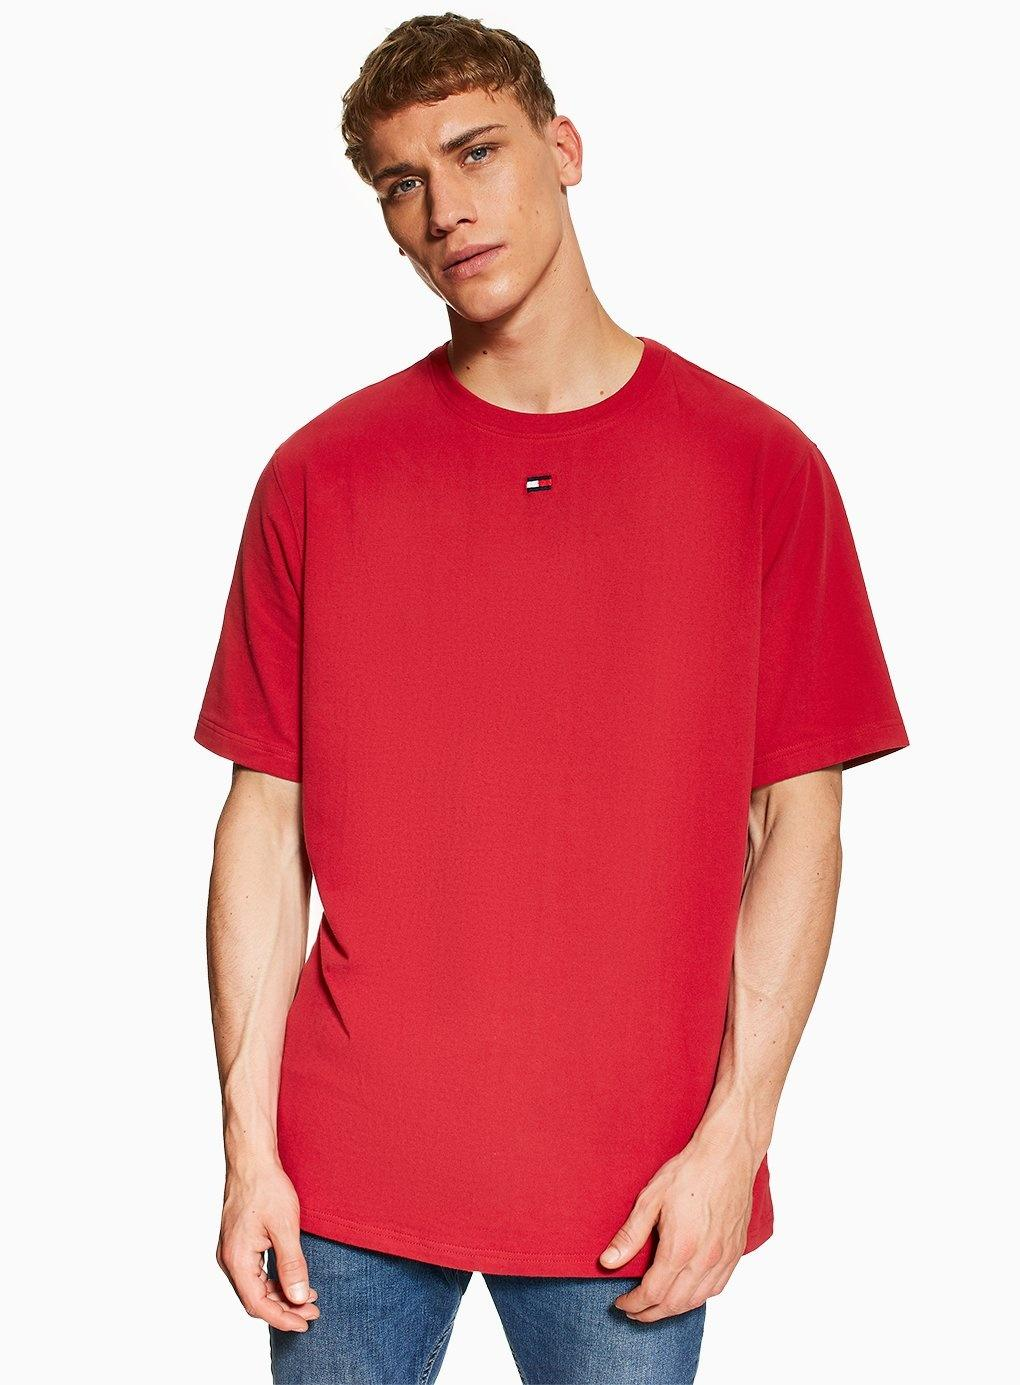 120ef62e Tommy Hilfiger Flag Loungewear T-shirt in Red for Men - Lyst